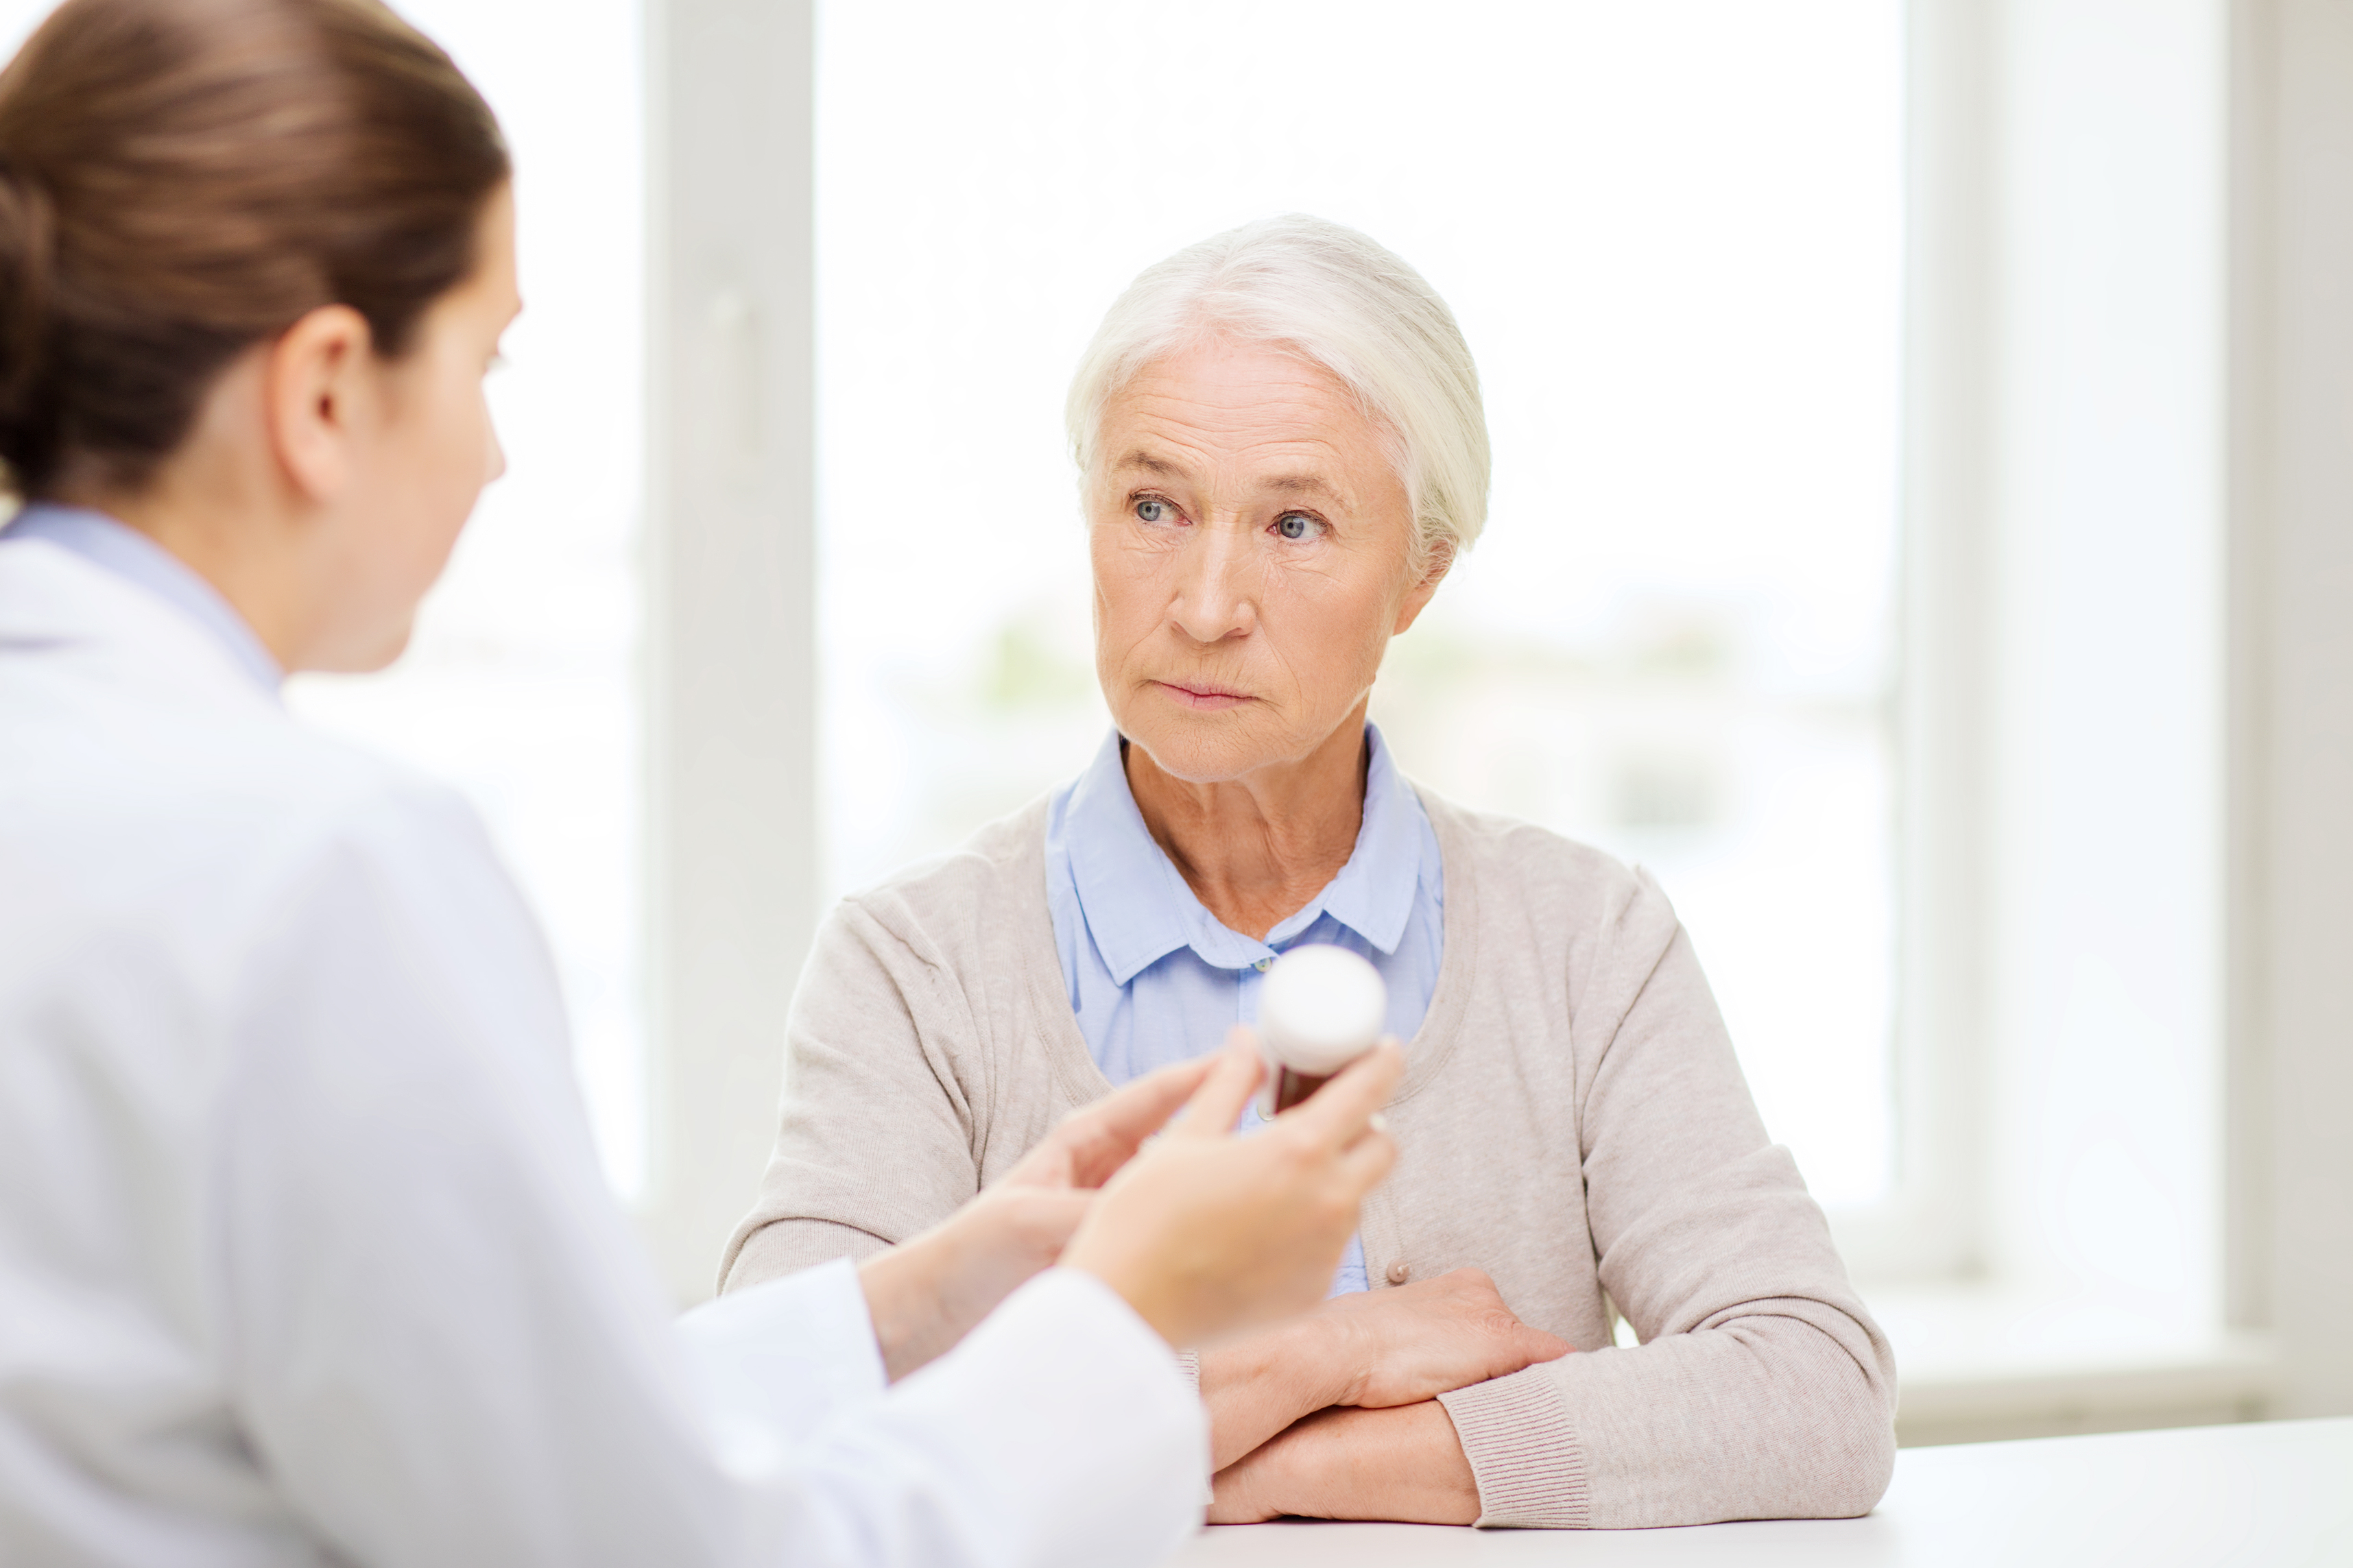 Specialists are not talking about death and dying to people with dementia